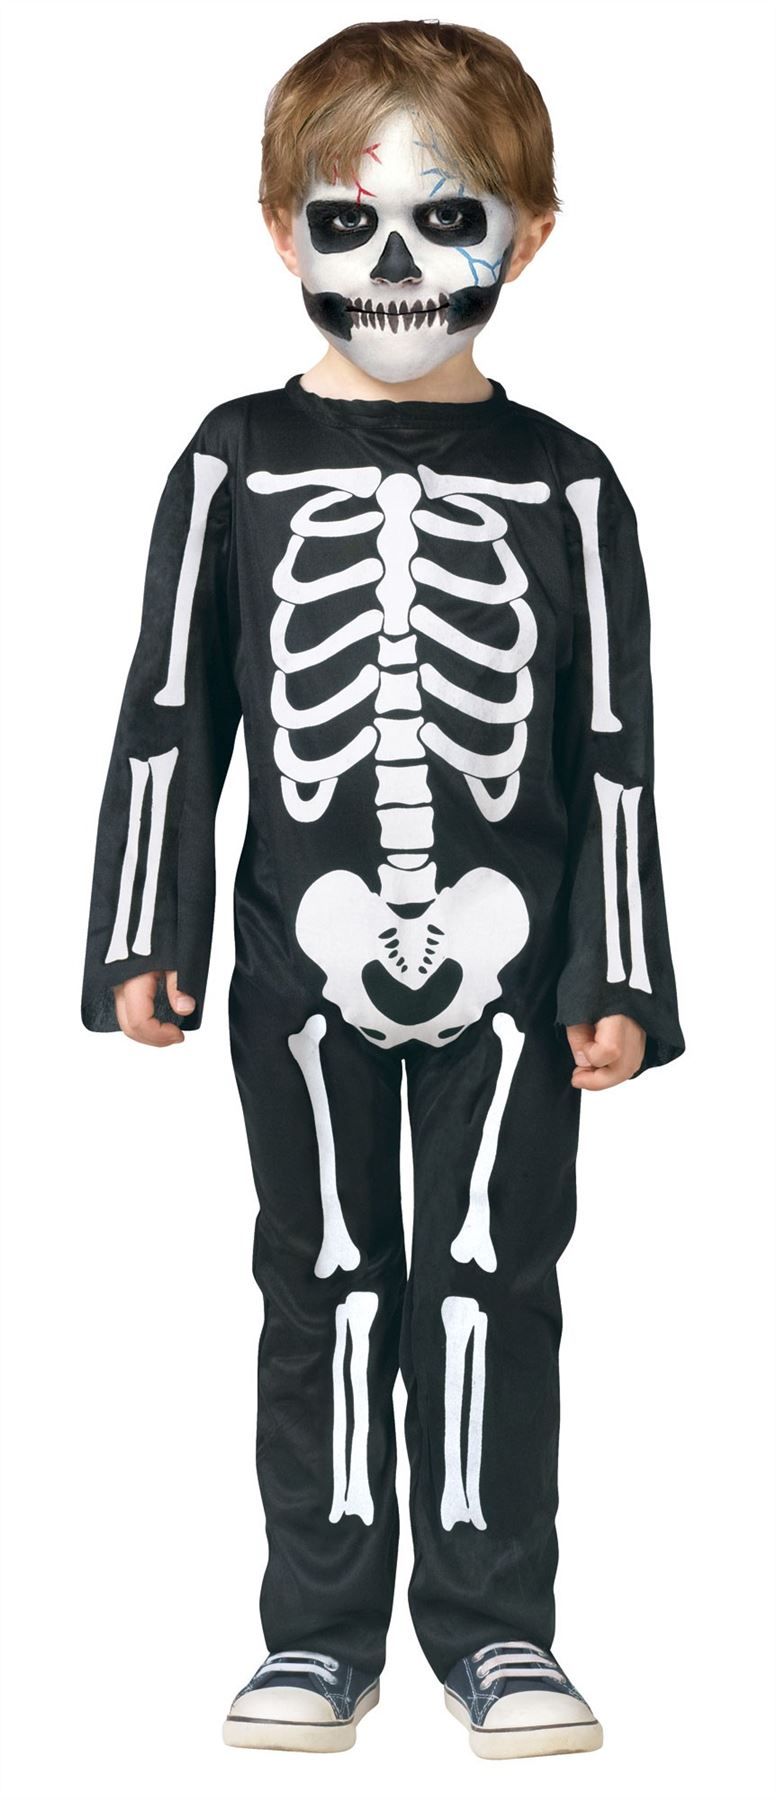 Skeleton Bones Jumpsuit Halloween Costume Toddler 3T 4T